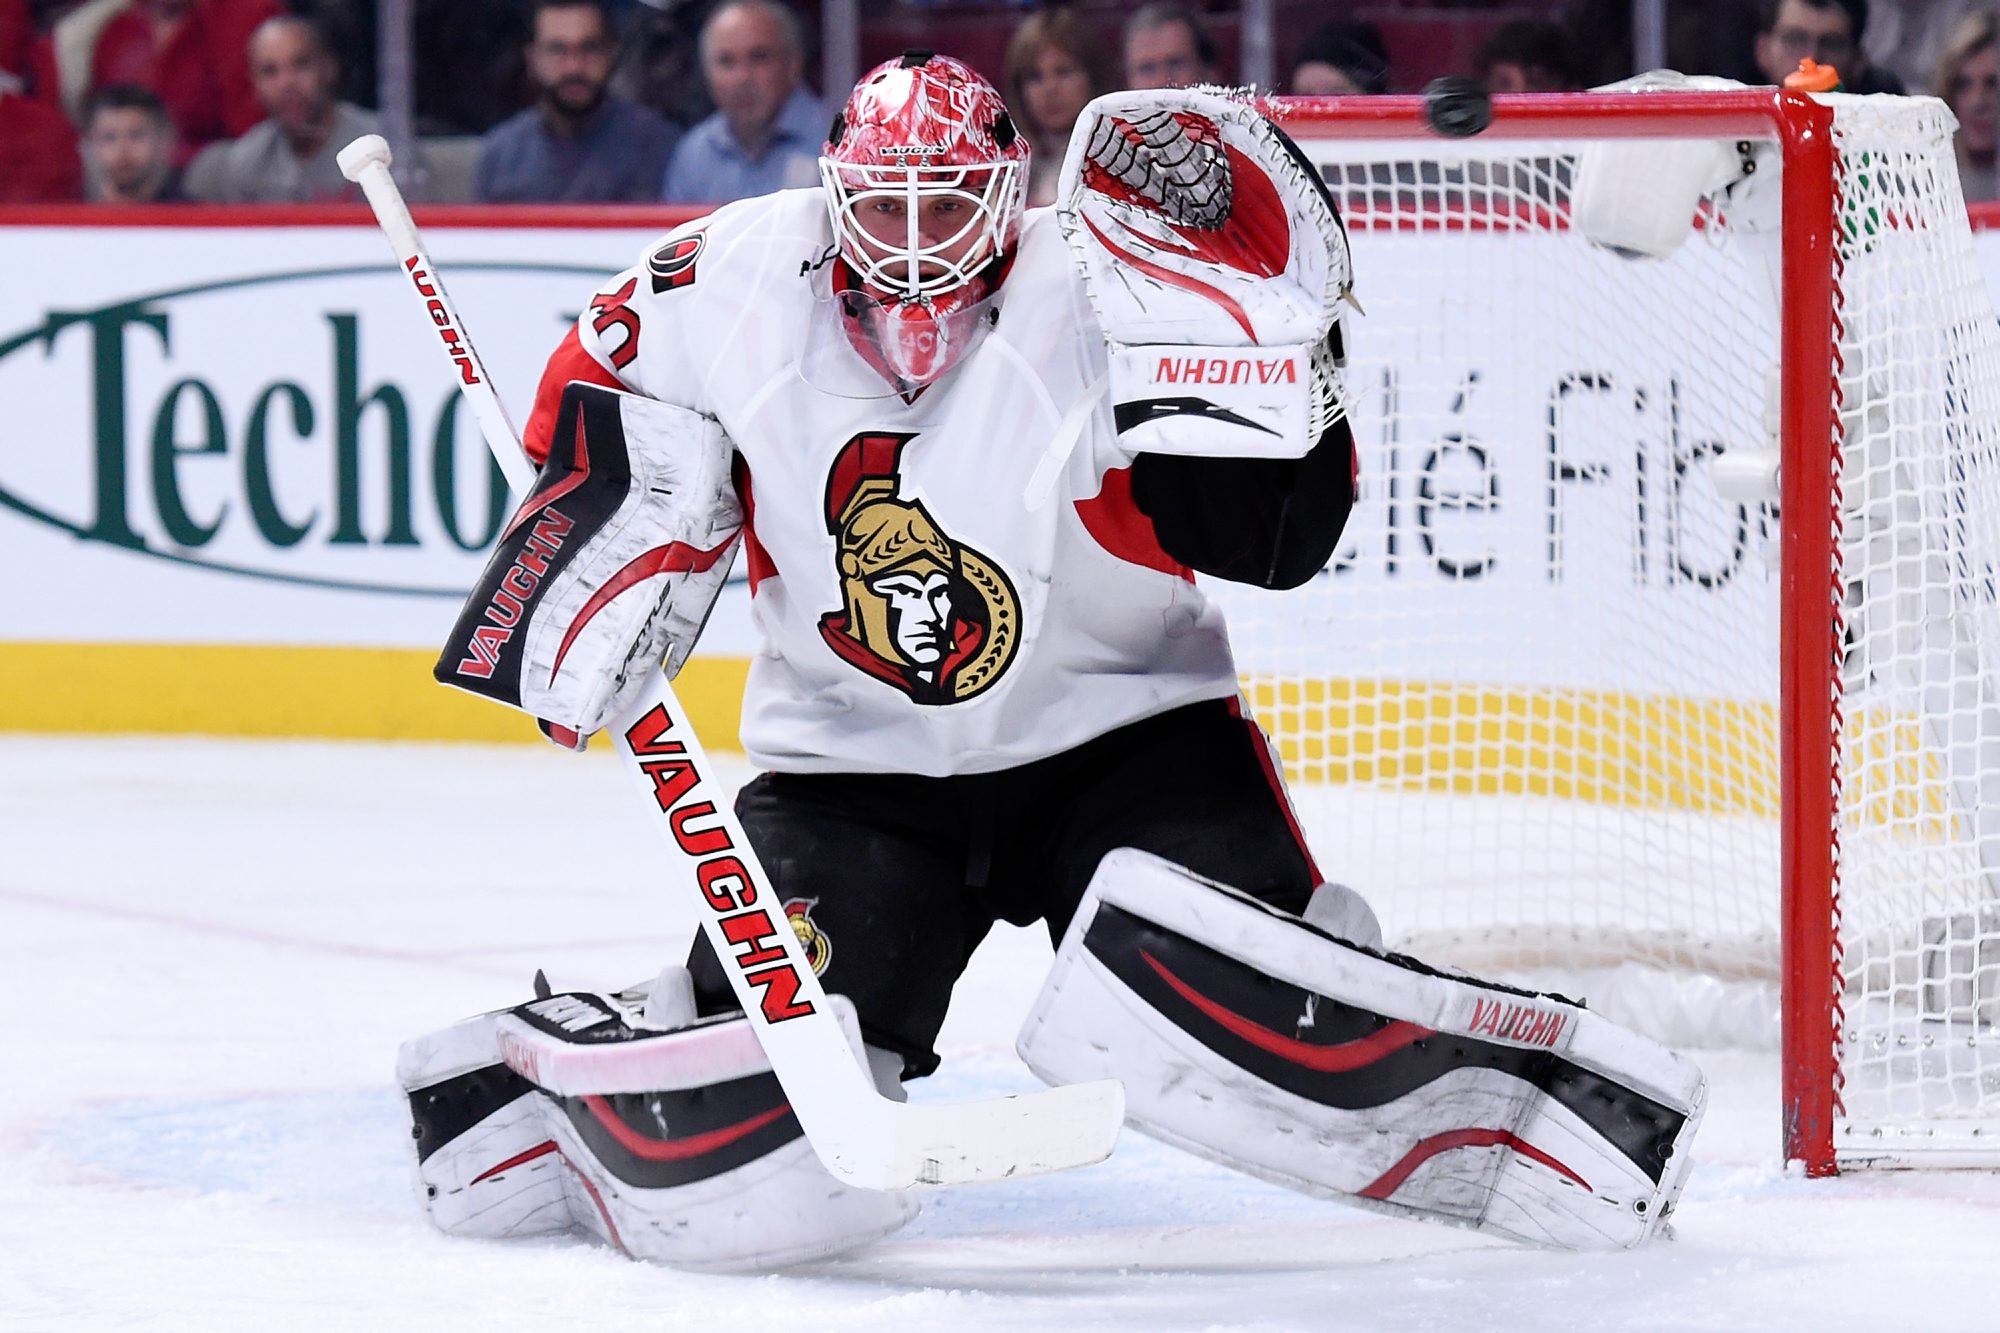 Sabres GM Tim Murray said it works into the organization's long-range plans if goaltender Robin Lehner, acquired in a trade with Ottawa on Friday, needs a season to fully develop into a No. 1 netminder.